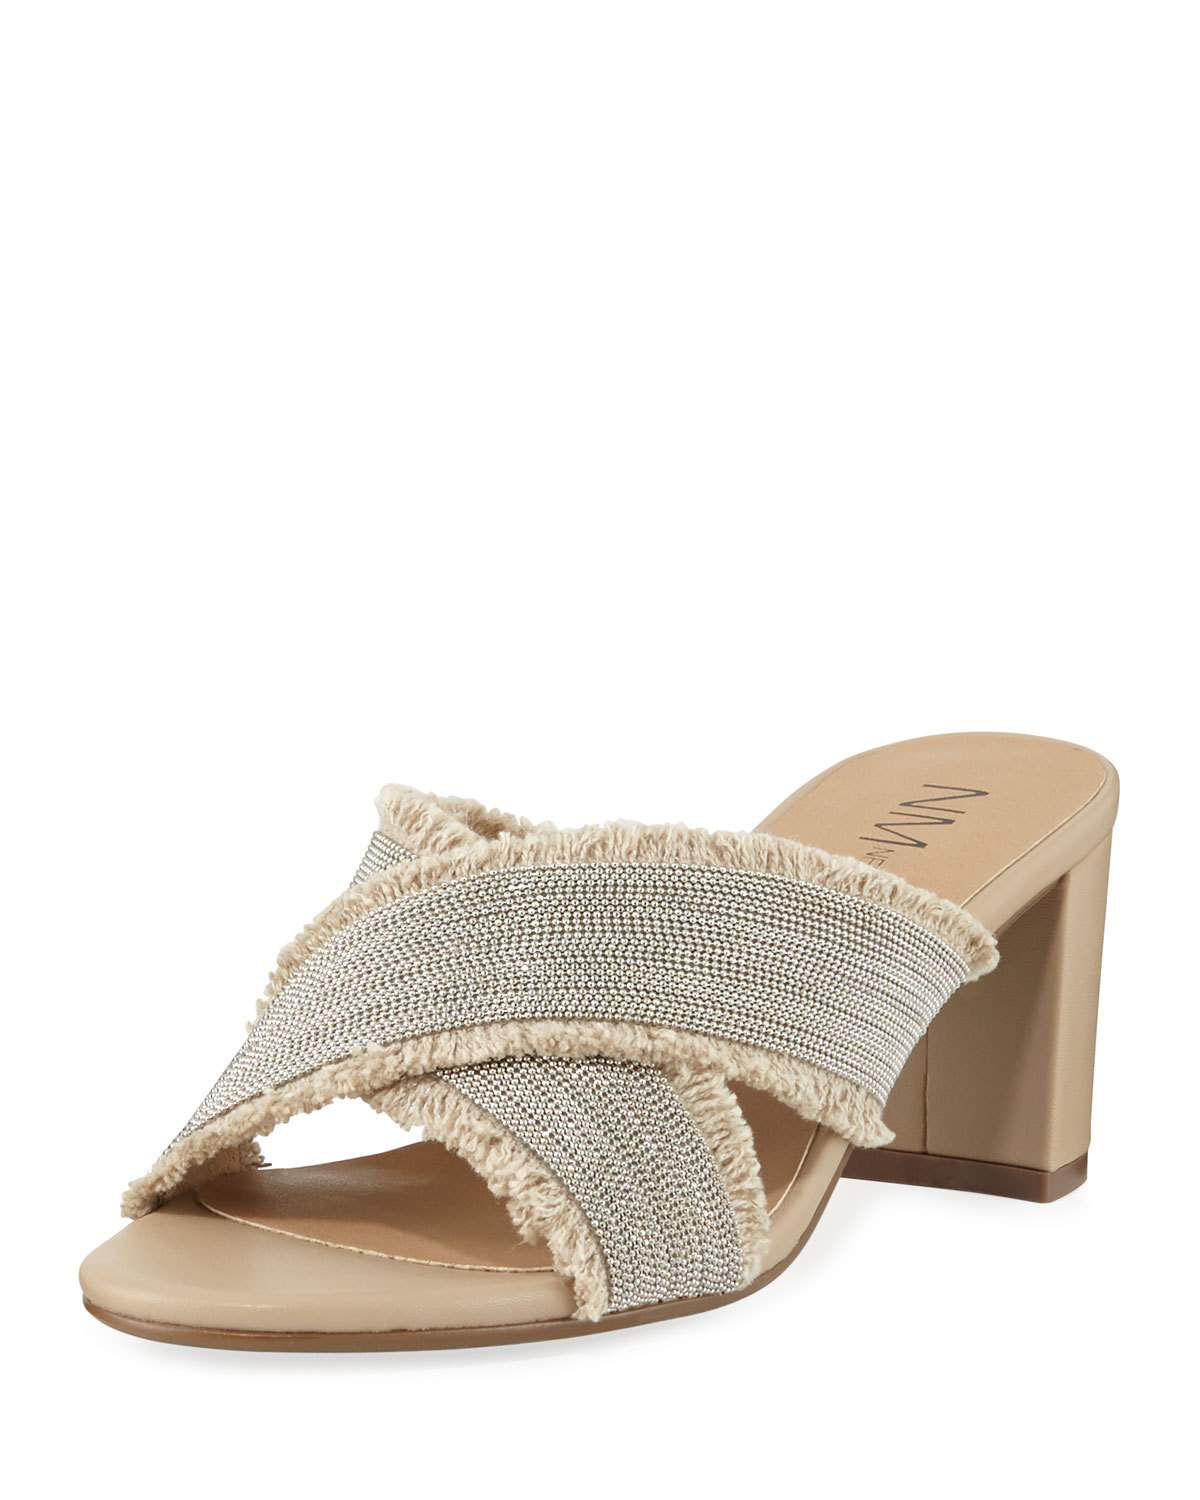 Neiman Marcus Mayday Beaded Slide Sandals In Natual Silver ...